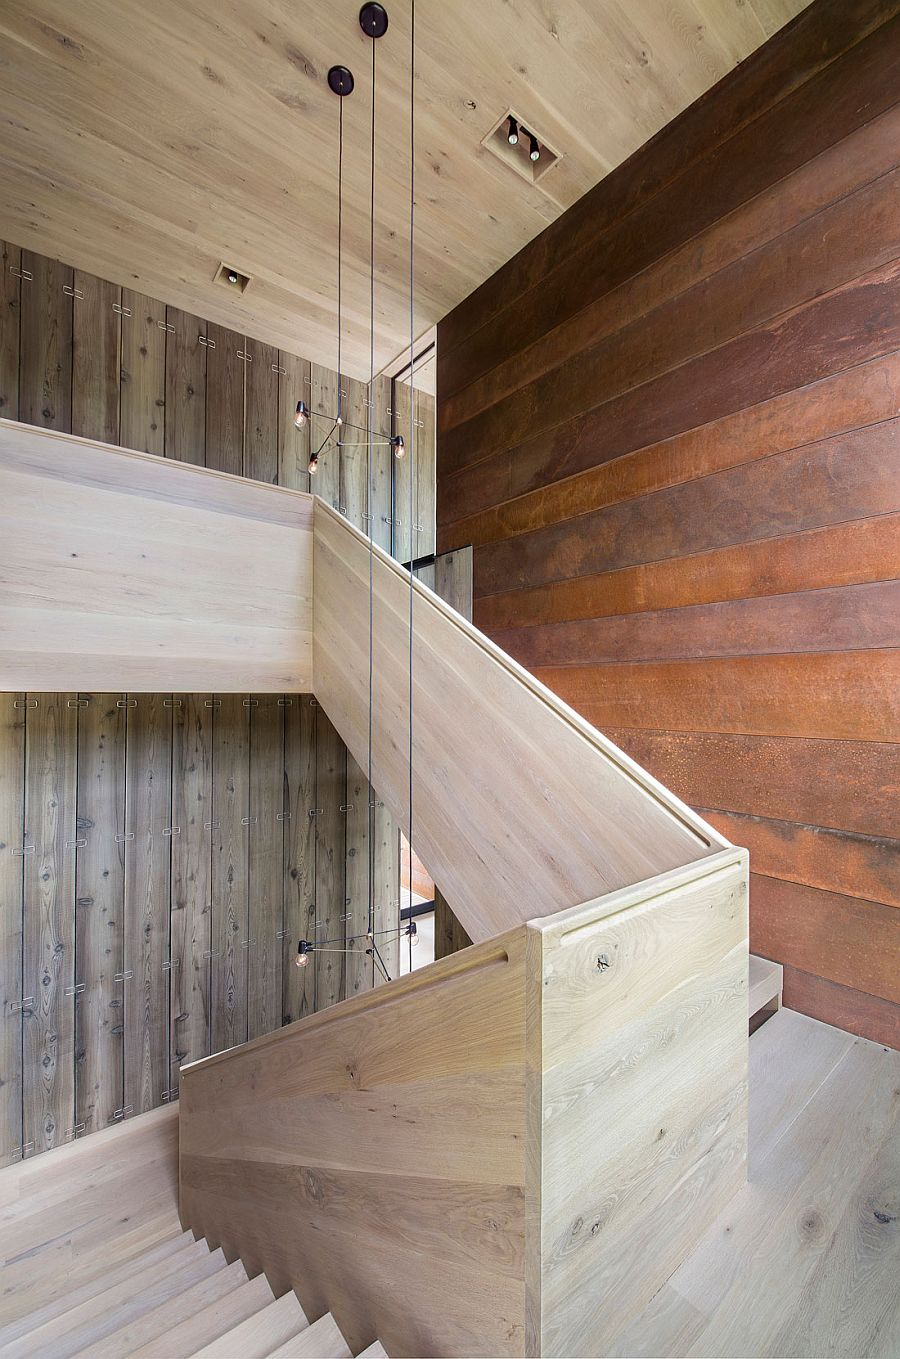 Tapered thickness of stairs as you move upwards gives them a unique acoustic quality